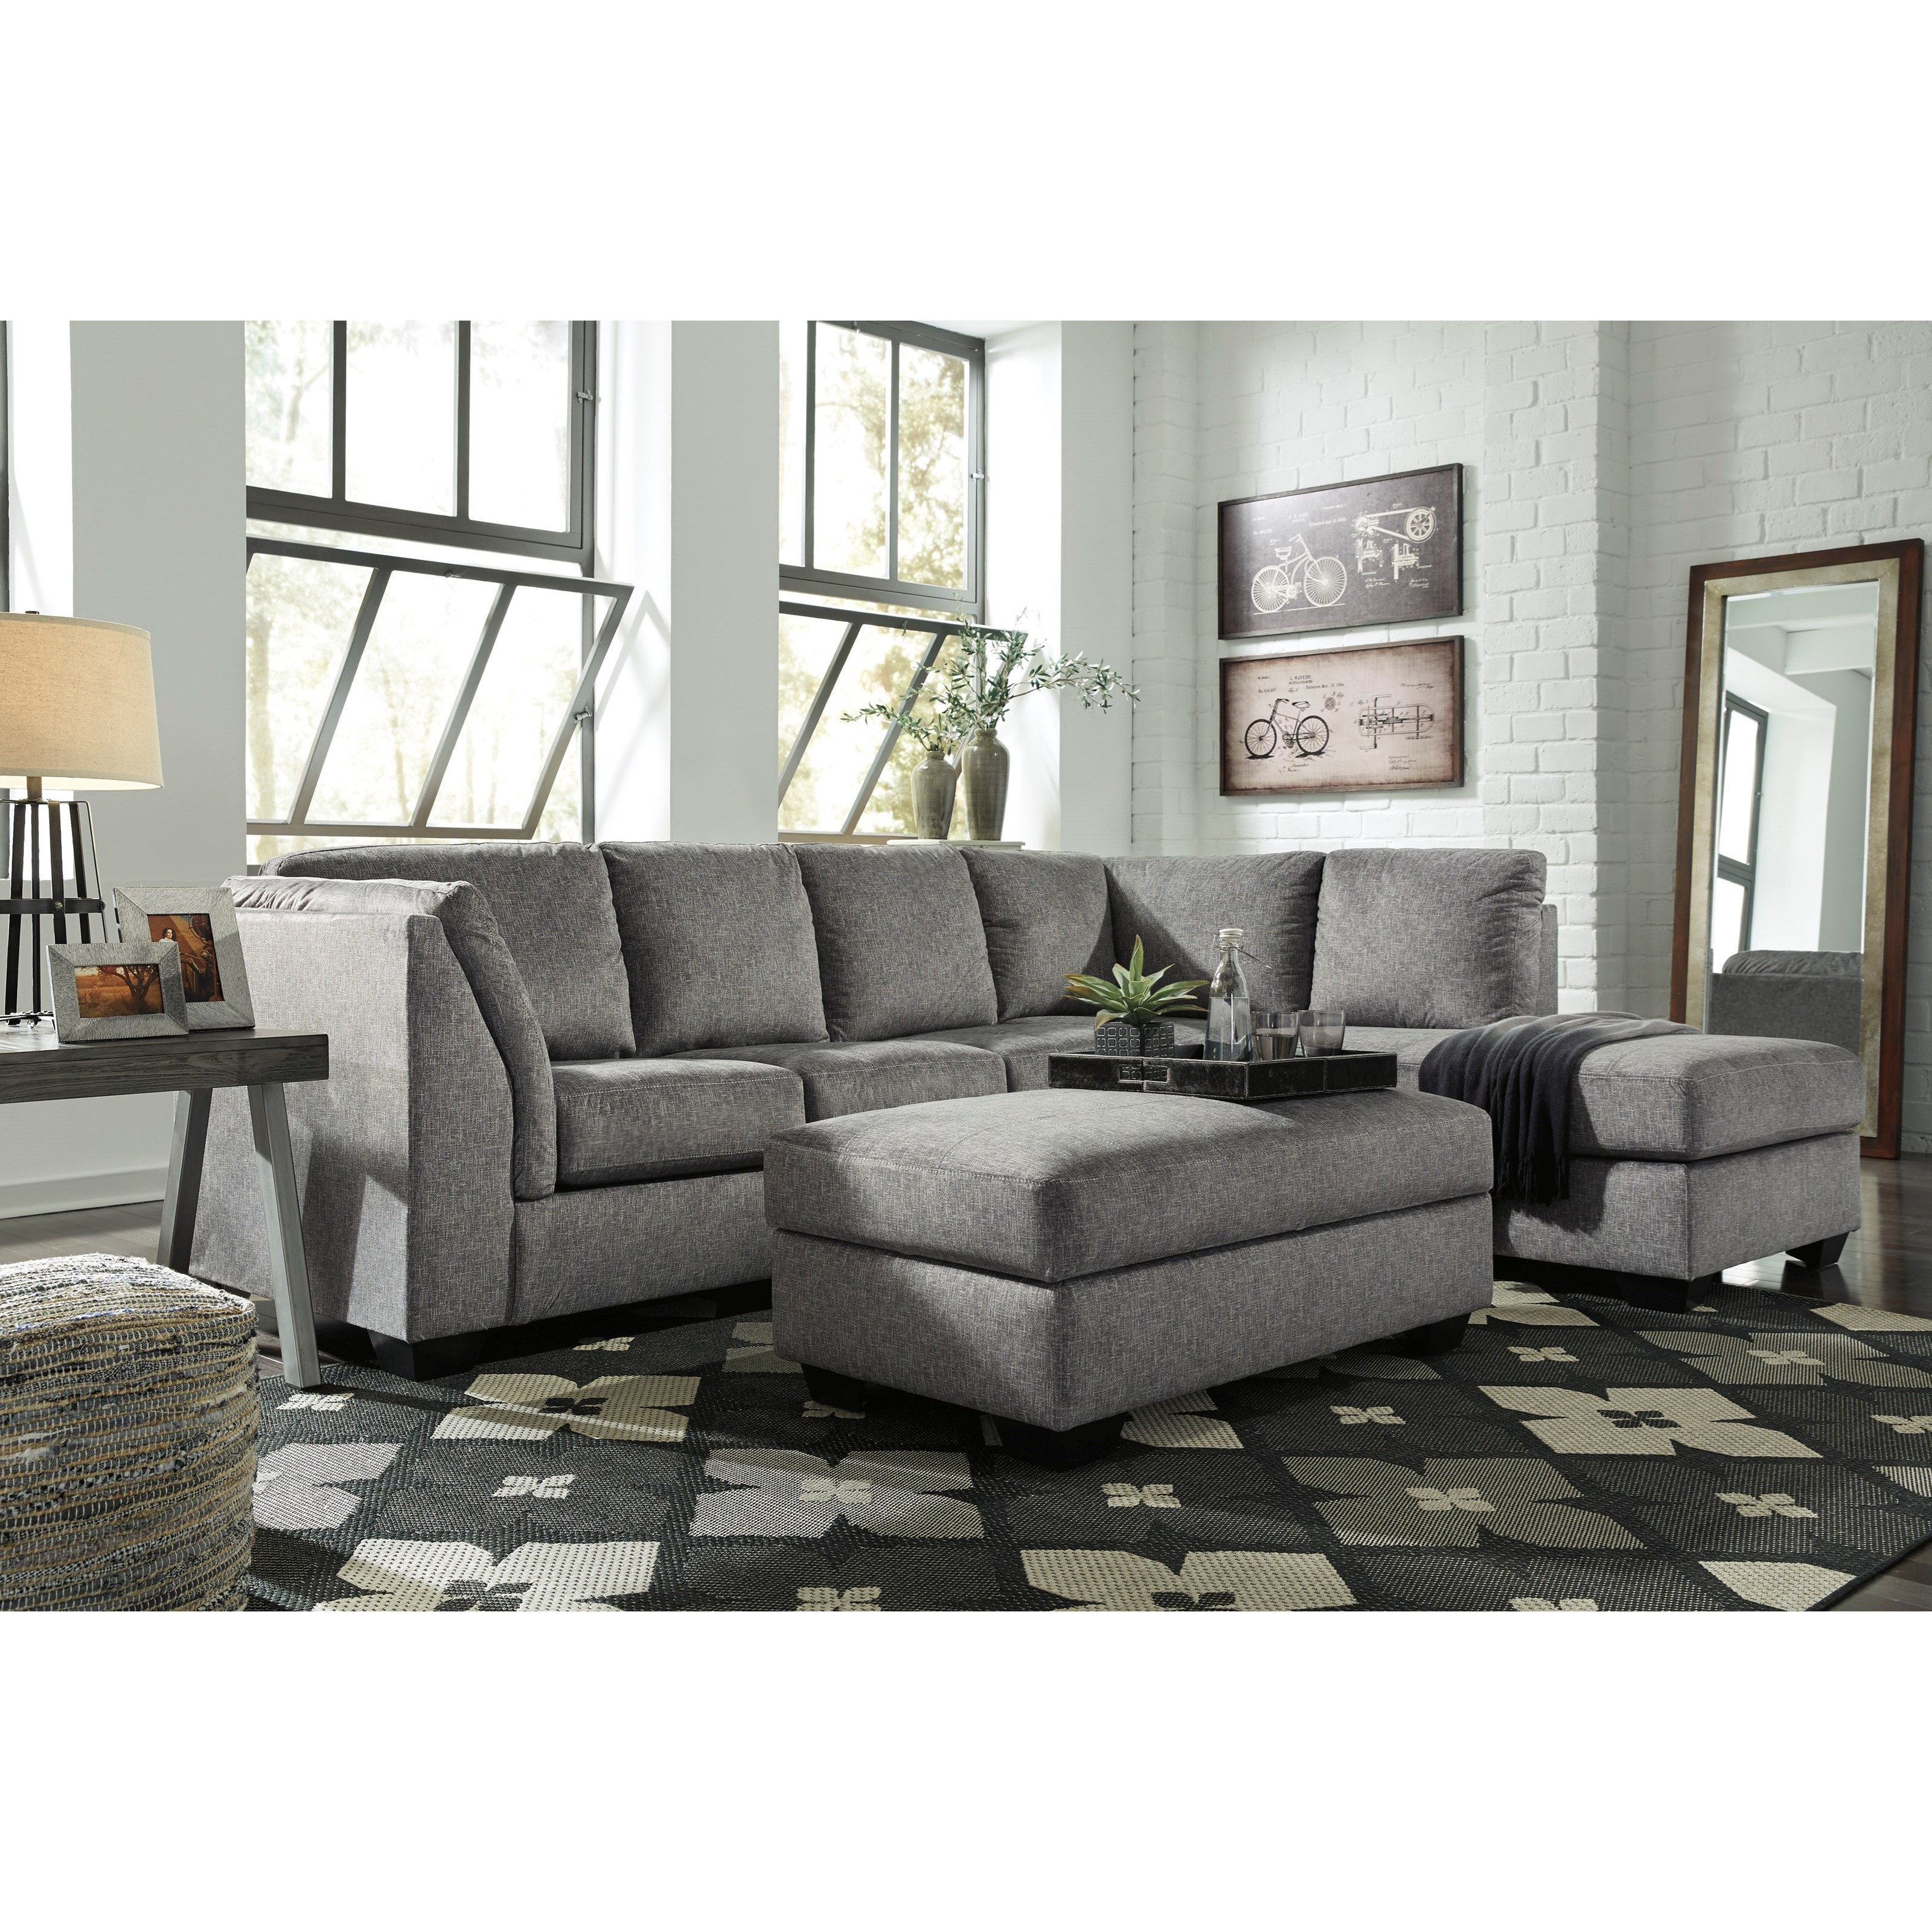 Benchcraft belcastel 2 piece sectional with right chaise for 2 piece sectional sofa with chaise